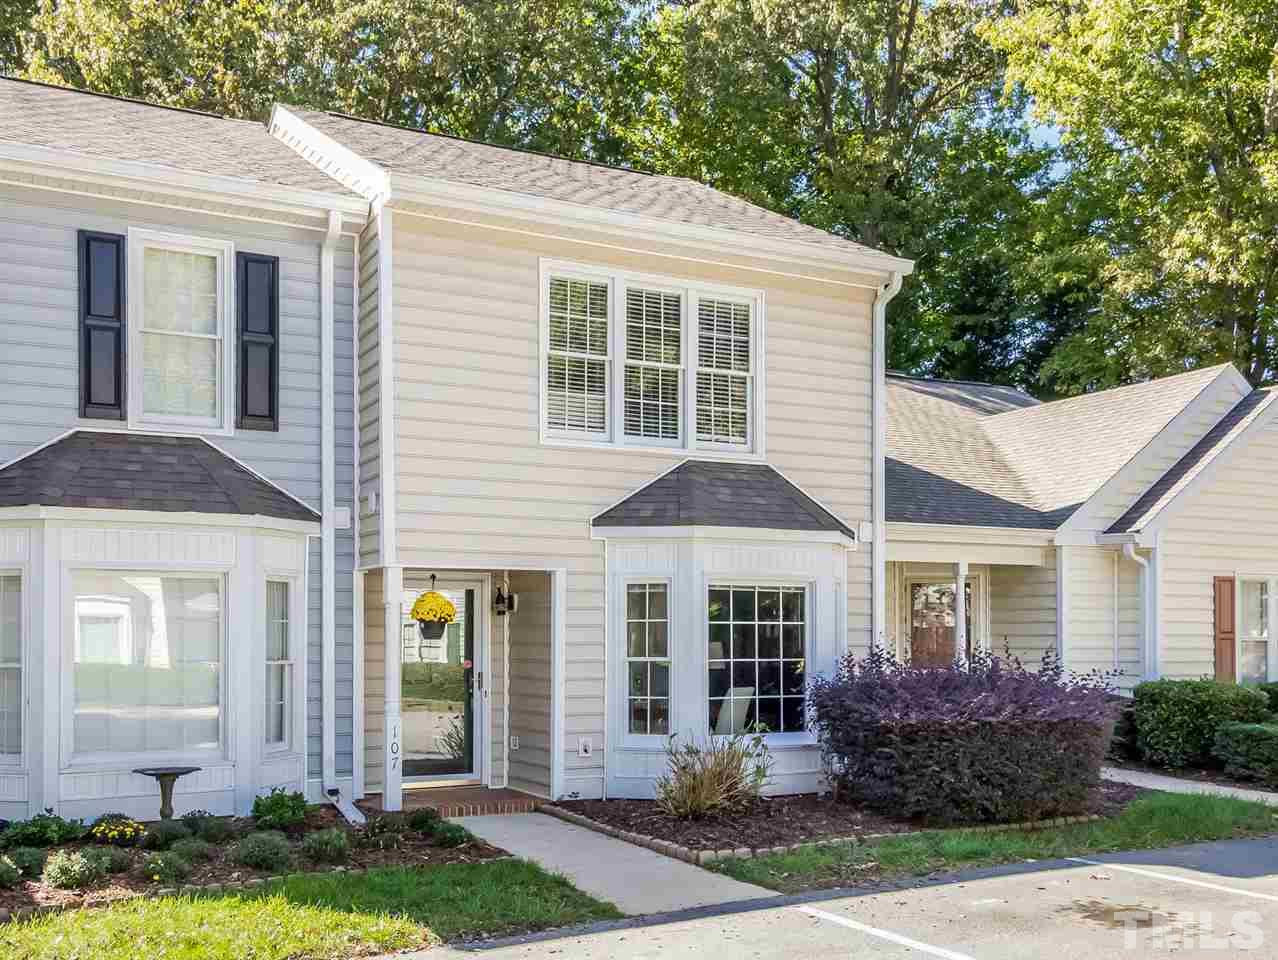 107 LINVILLE RIVER ROAD, CARY, NC 27511